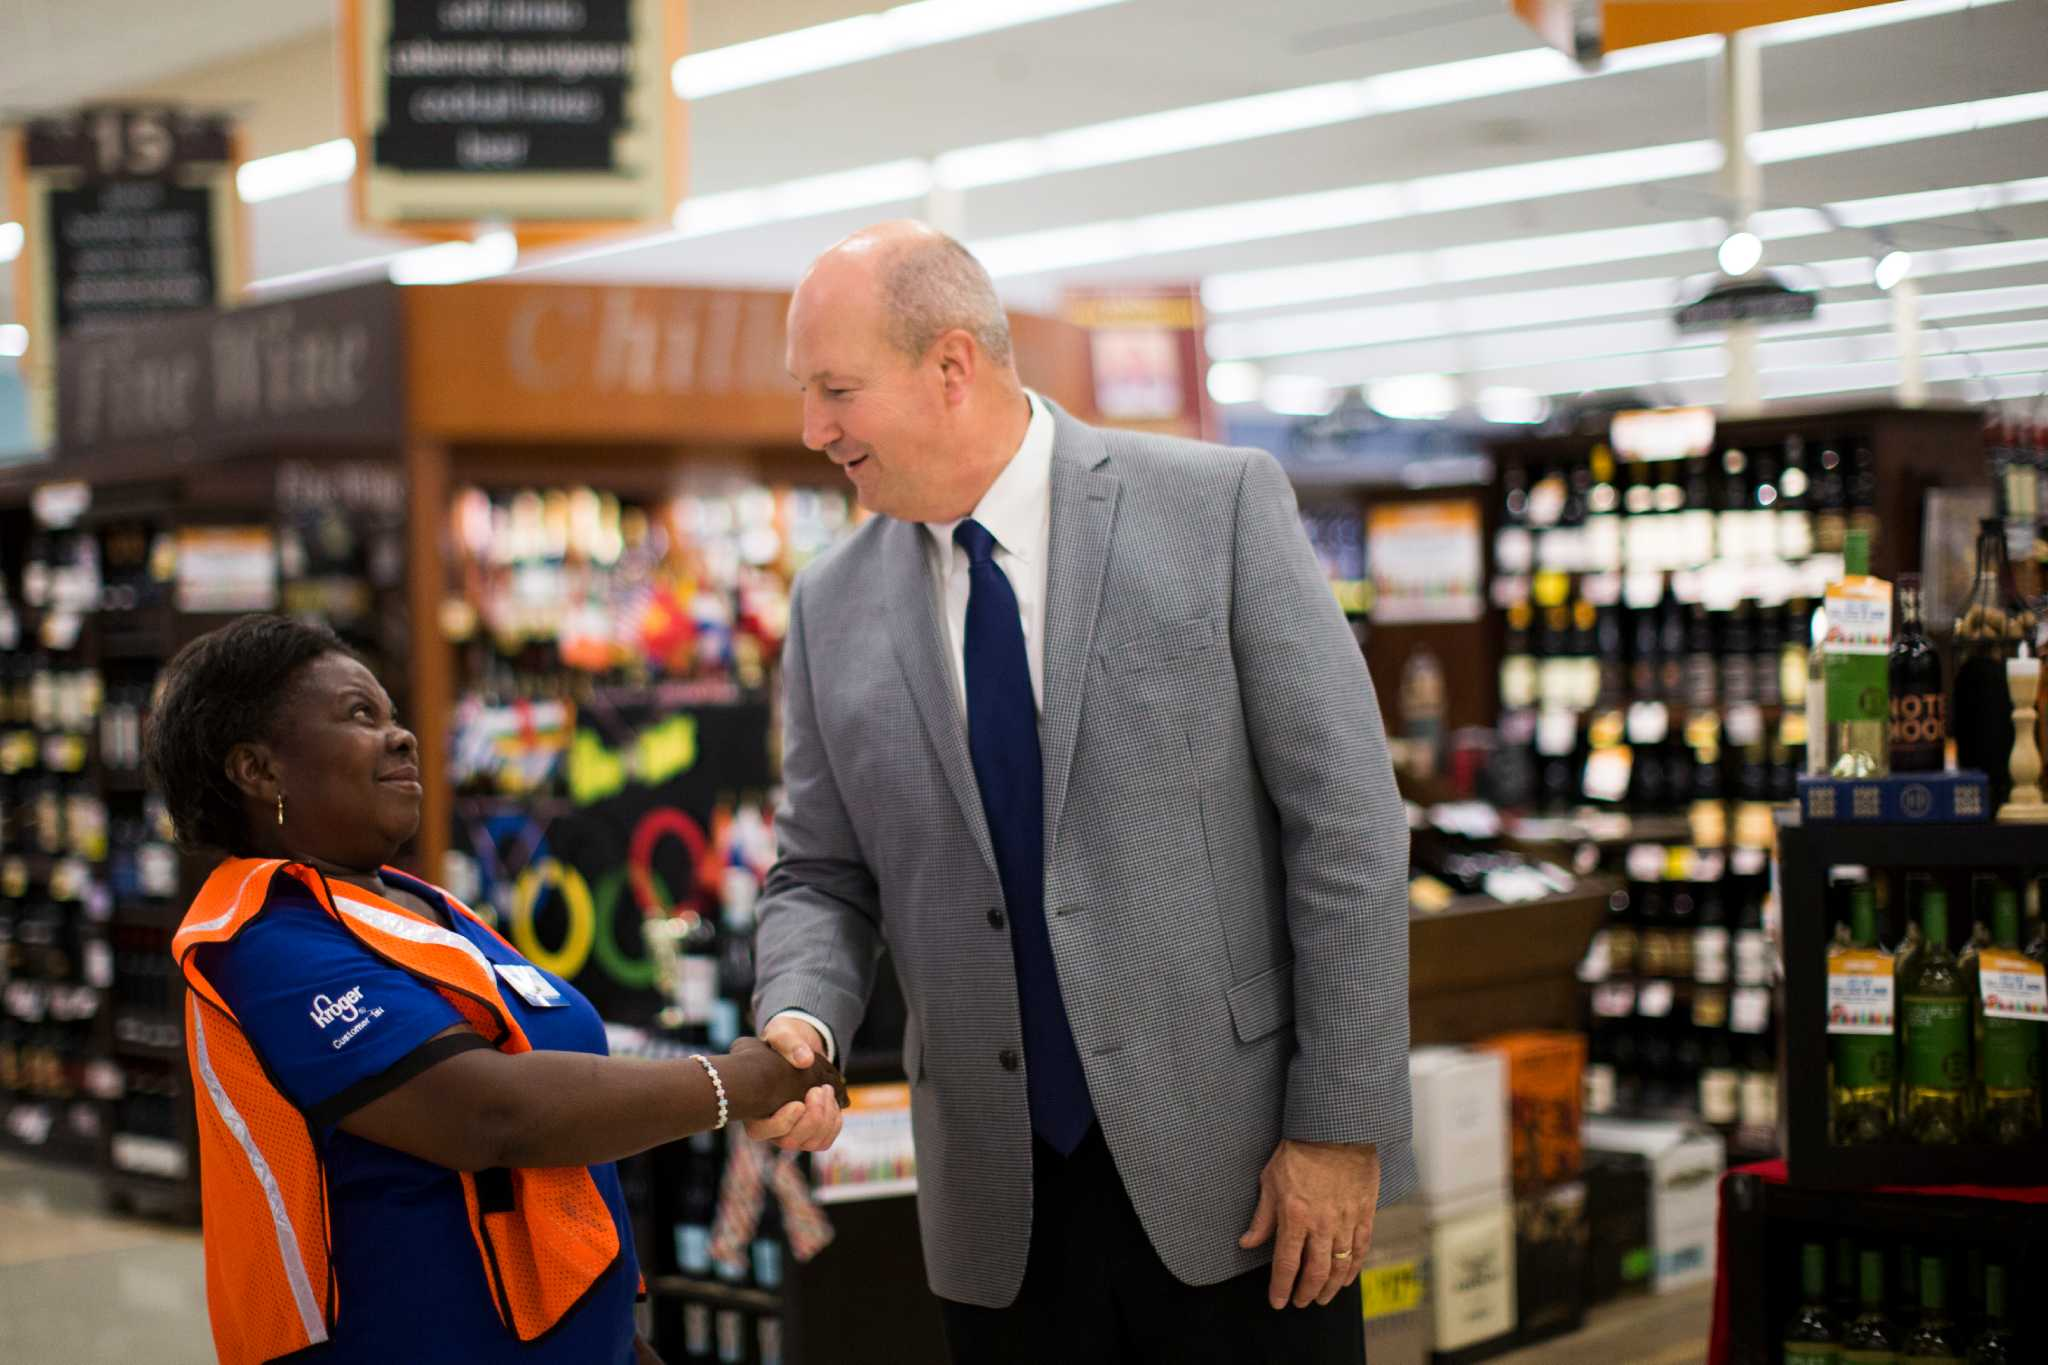 Local division president wraps up 44-year Kroger career -  HoustonChronicle.com